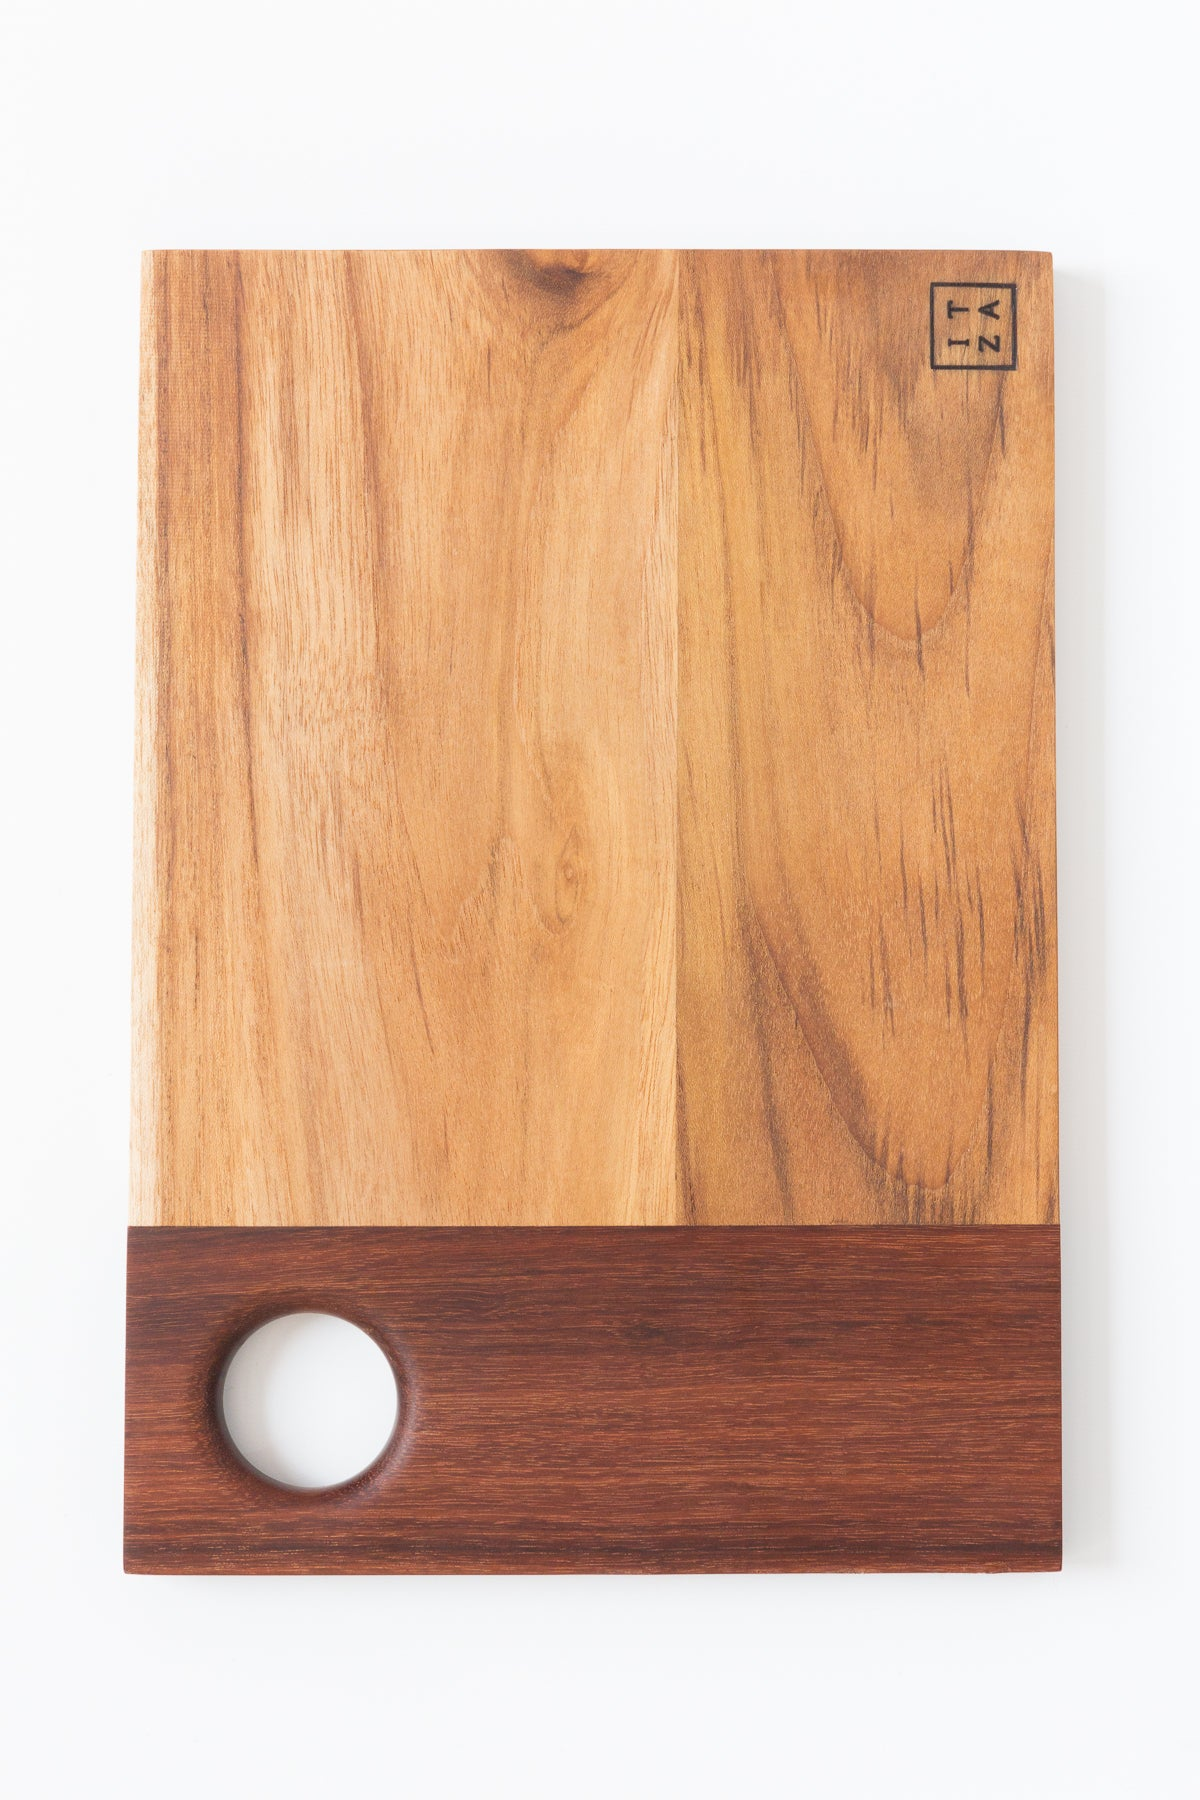 Itza Wood Small Rectangle Serving Board